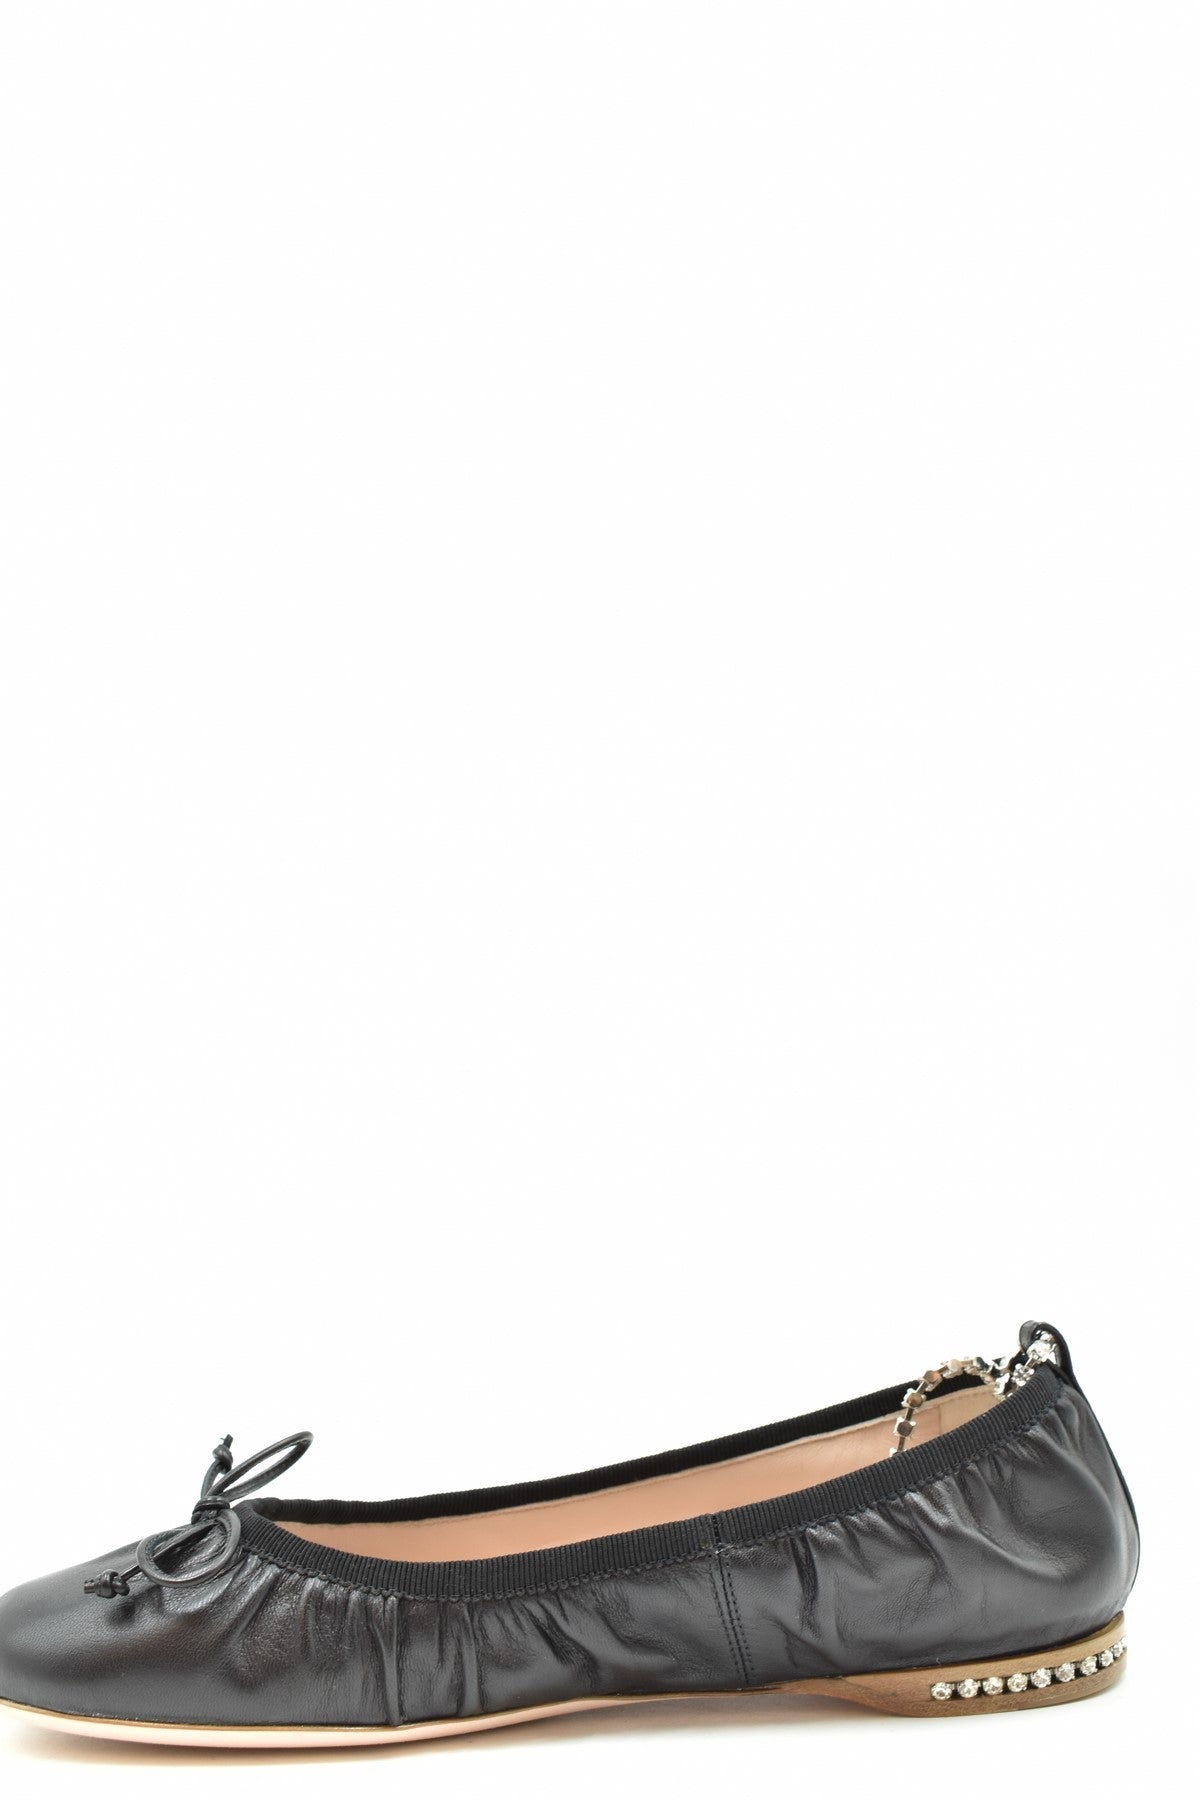 Shoes Miu Miu-Women's Fashion - Women's Shoes - Women's Flats-Product Details Manufacturer Part Number: 5F919C 0386Year: 2020Composition: Leather 100%Size: EuGender: WomanMade In: ItalySeason: Spring / SummerType Of Accessory: ShoesMain Color: BlackTerms: New With Label-Keyomi-Sook